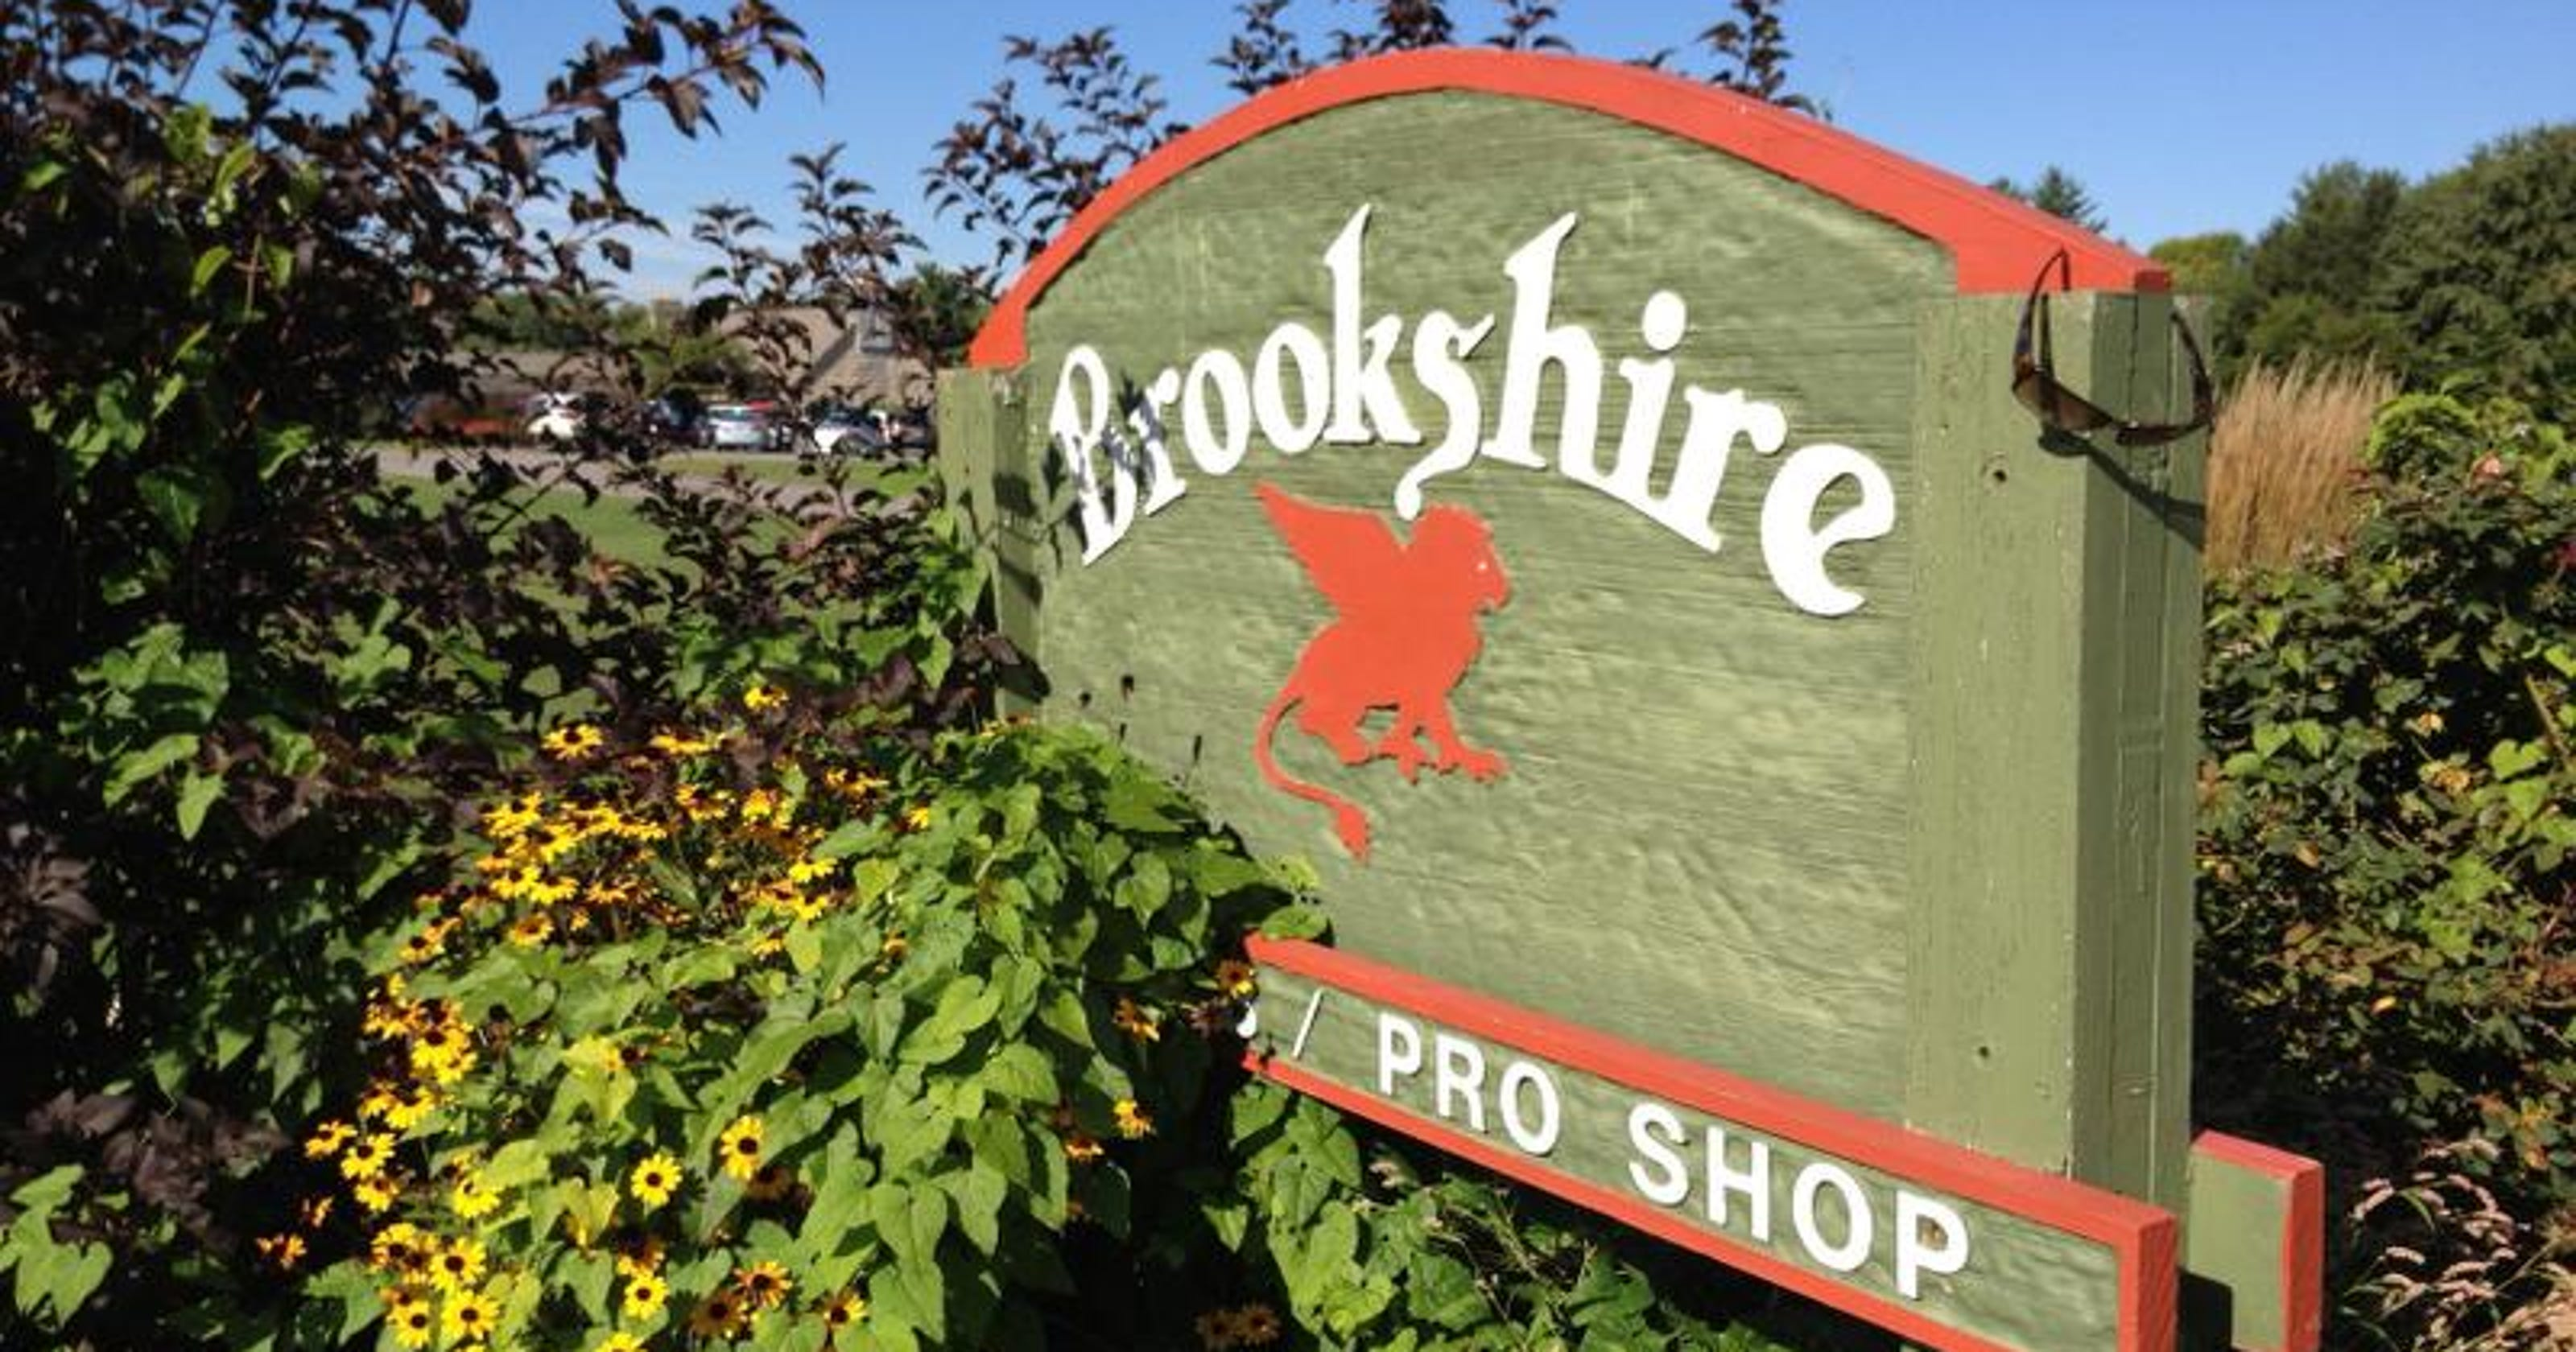 Another Change For Carmels Brookshire Golf Club